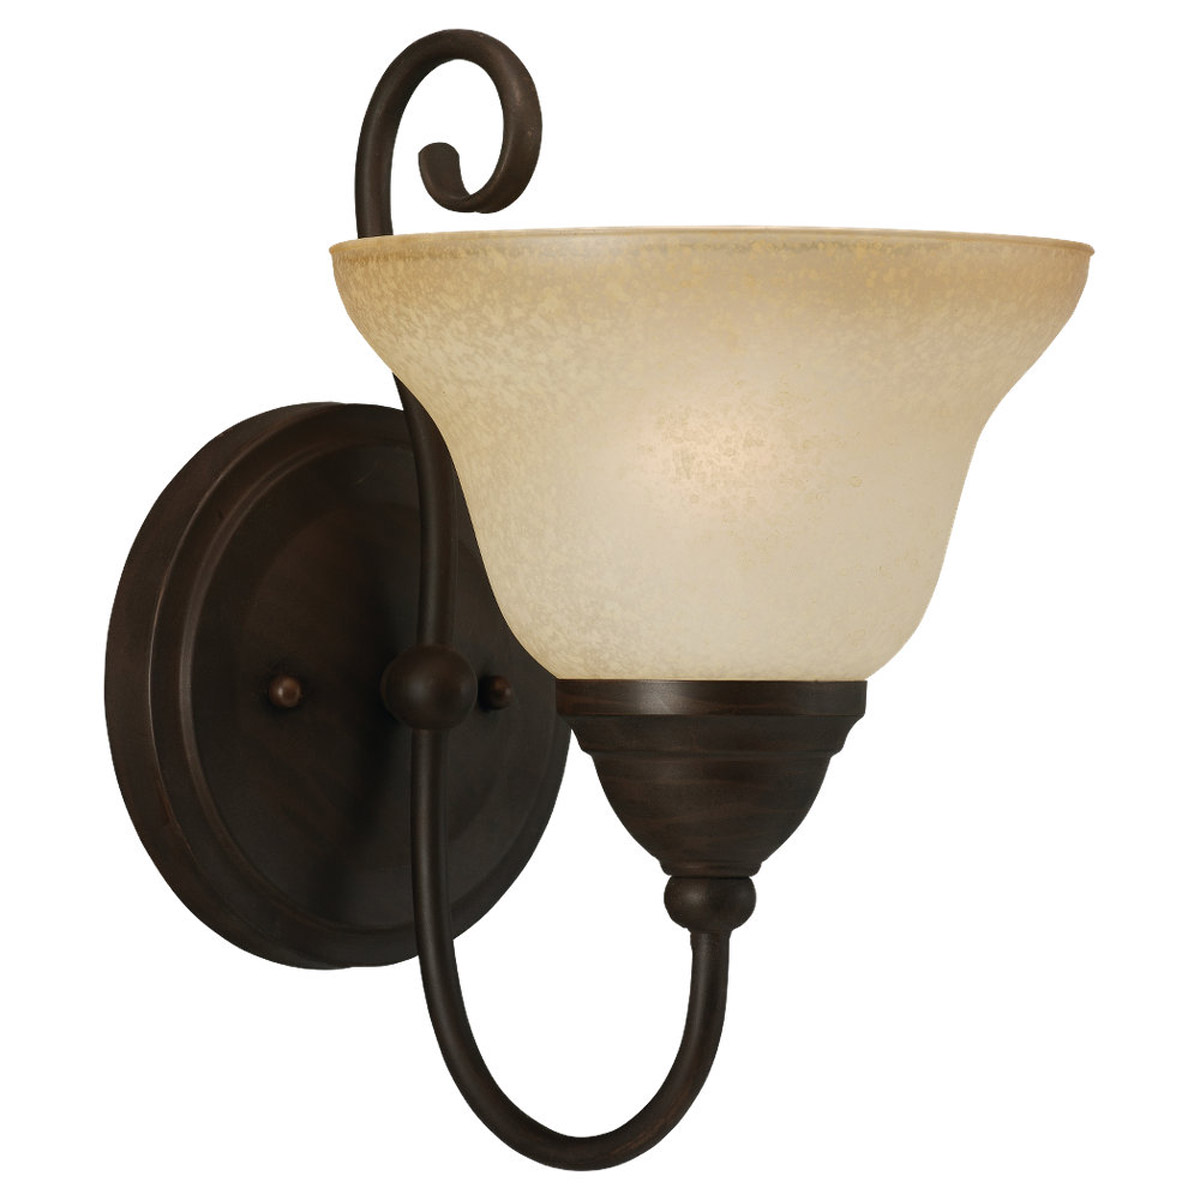 Sea Gull Lighting Montclaire 1 Light Bath Vanity in Olde Iron 41105-72 photo